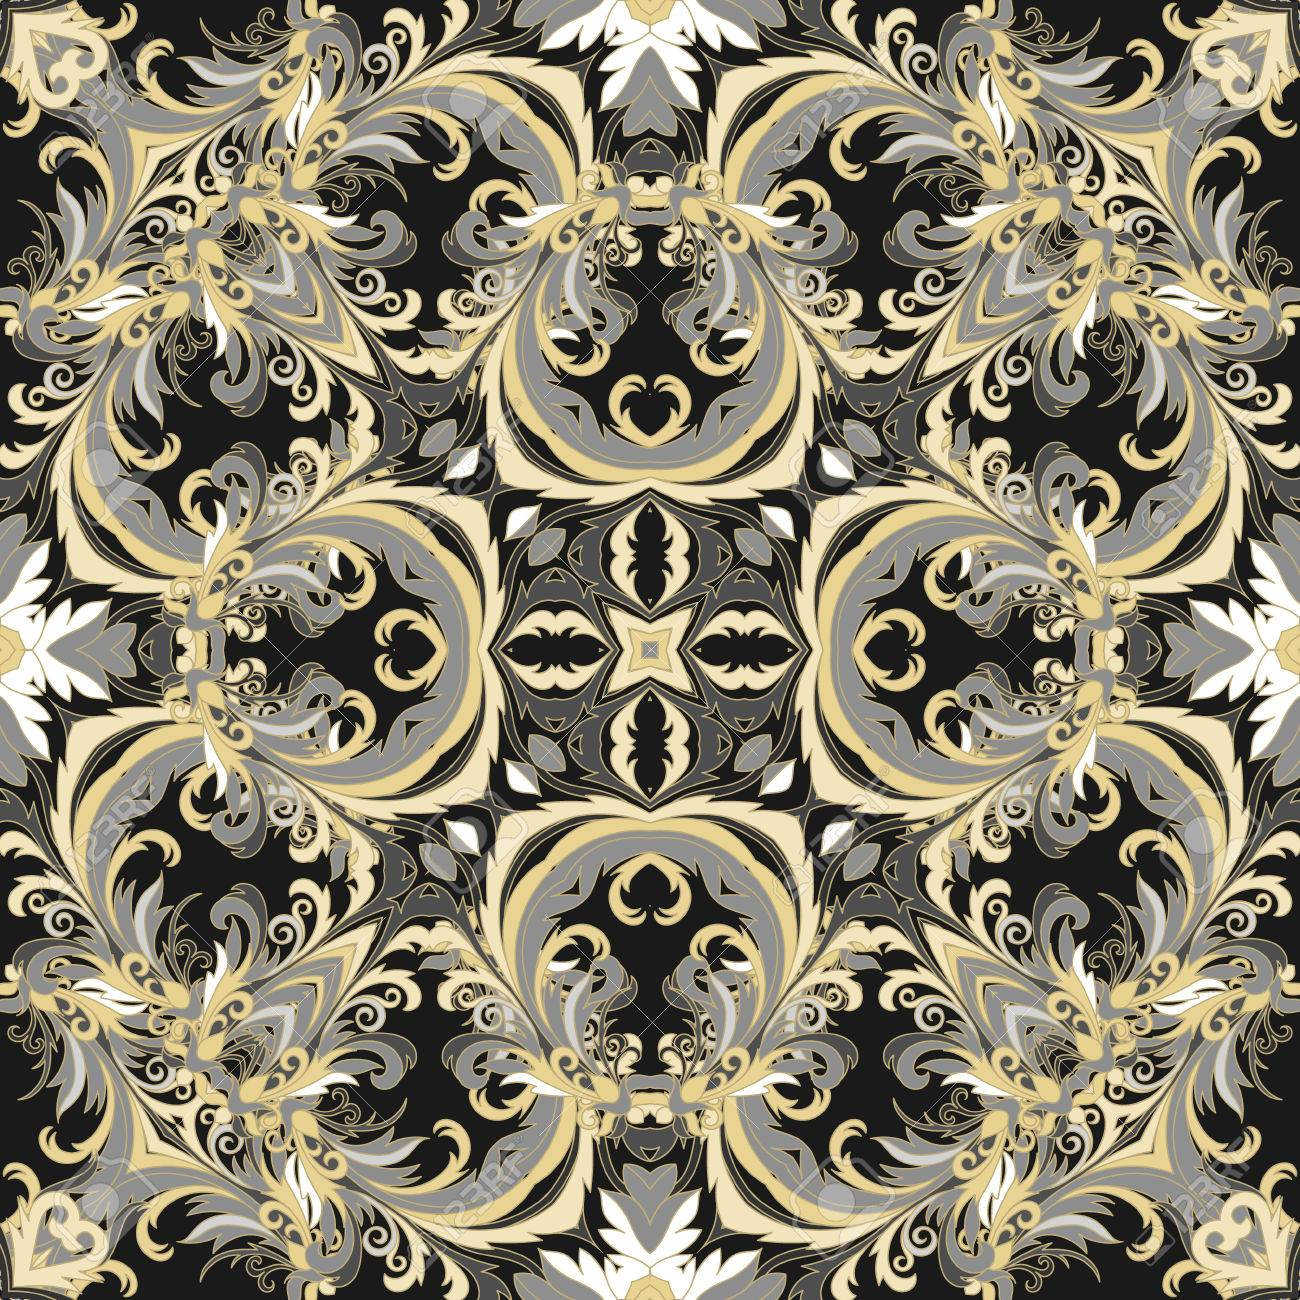 Baroque Style Floral Wallpaper Seamless Vector Pattern Square Tile Black White Gold Tone